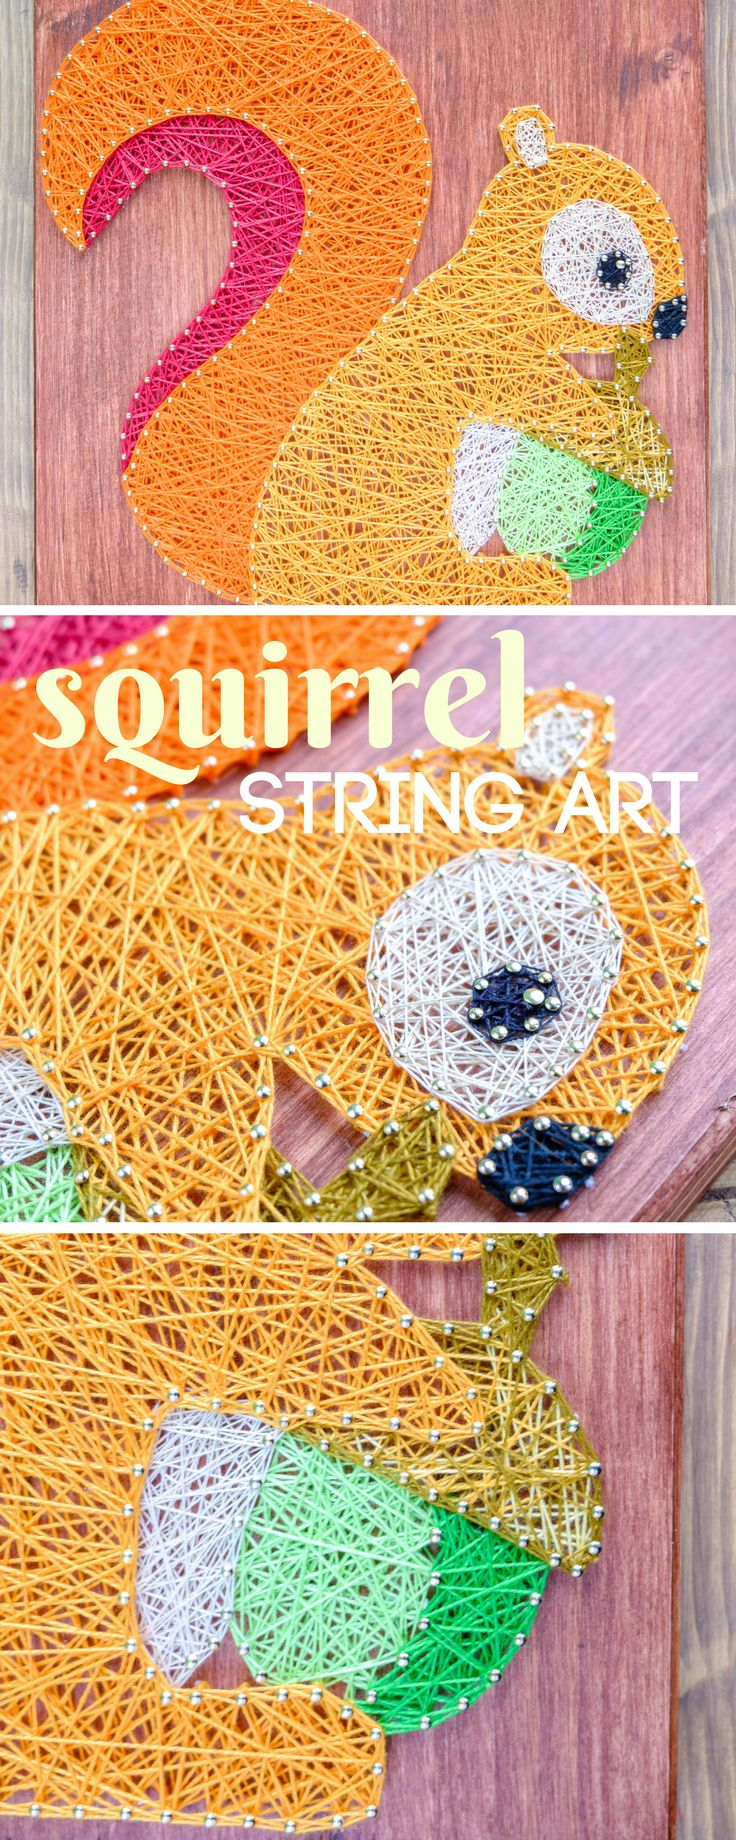 263 best Kids String Art images on Pinterest | Spikes, Crafts and ...